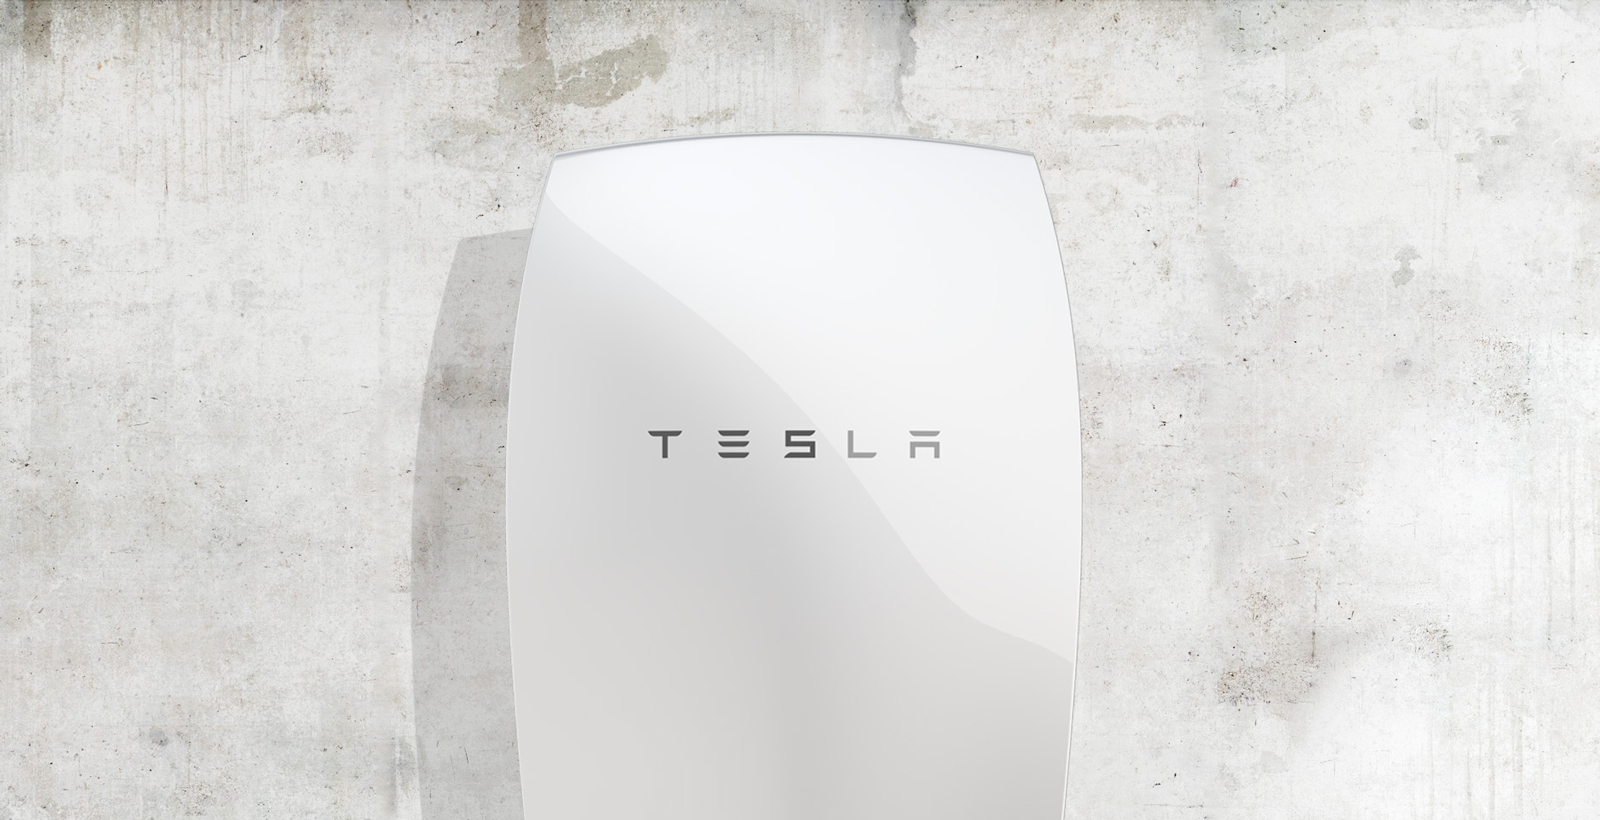 tesla d voile la powerwall une batterie pouvant alimenter une maison enti re branchez vous. Black Bedroom Furniture Sets. Home Design Ideas